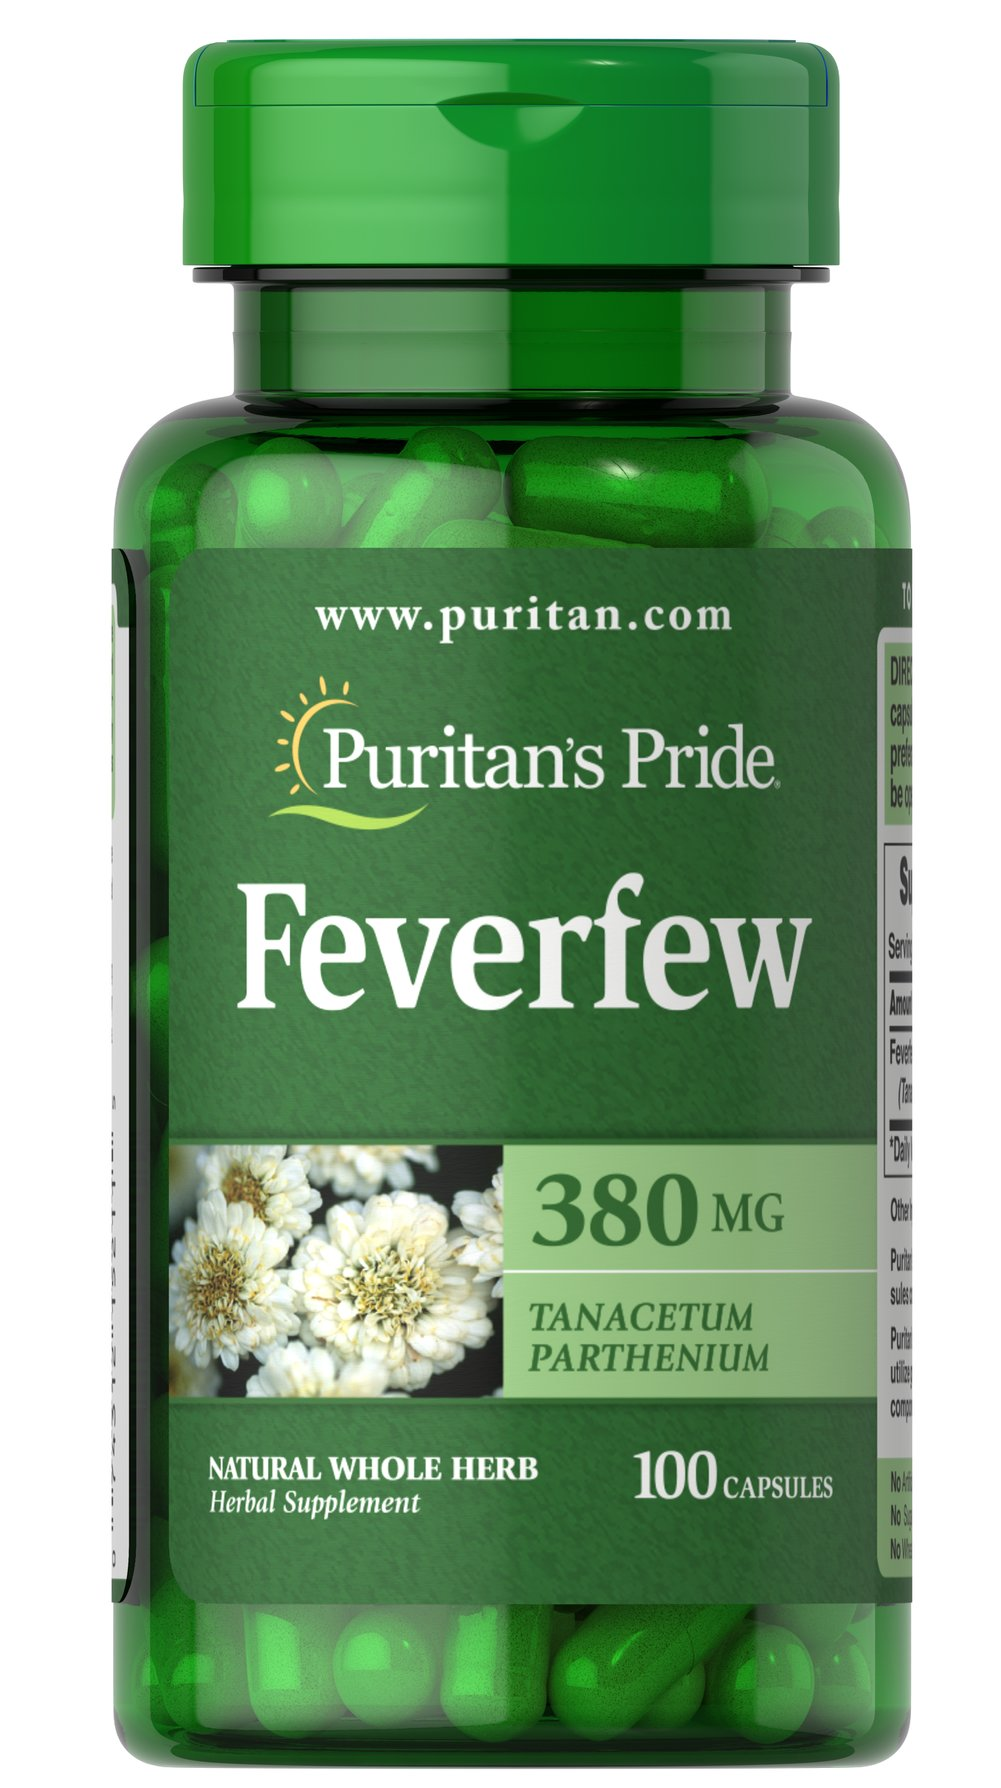 Feverfew 380 mg <p><br />Feverfew (Tanacetum parthenium) is traditionally<br />used by individuals with hectic lifestyles.**<br /><br />Puritan's Pride's preservative-free gelatin capsules<br />contain pure milled herb powder.<br /><br />Puritan's Pride's Natural Whole Herb products<br />utilize ground plant parts to provide the natural<br />components found in nature.</p> 100 Capsules 380 mg